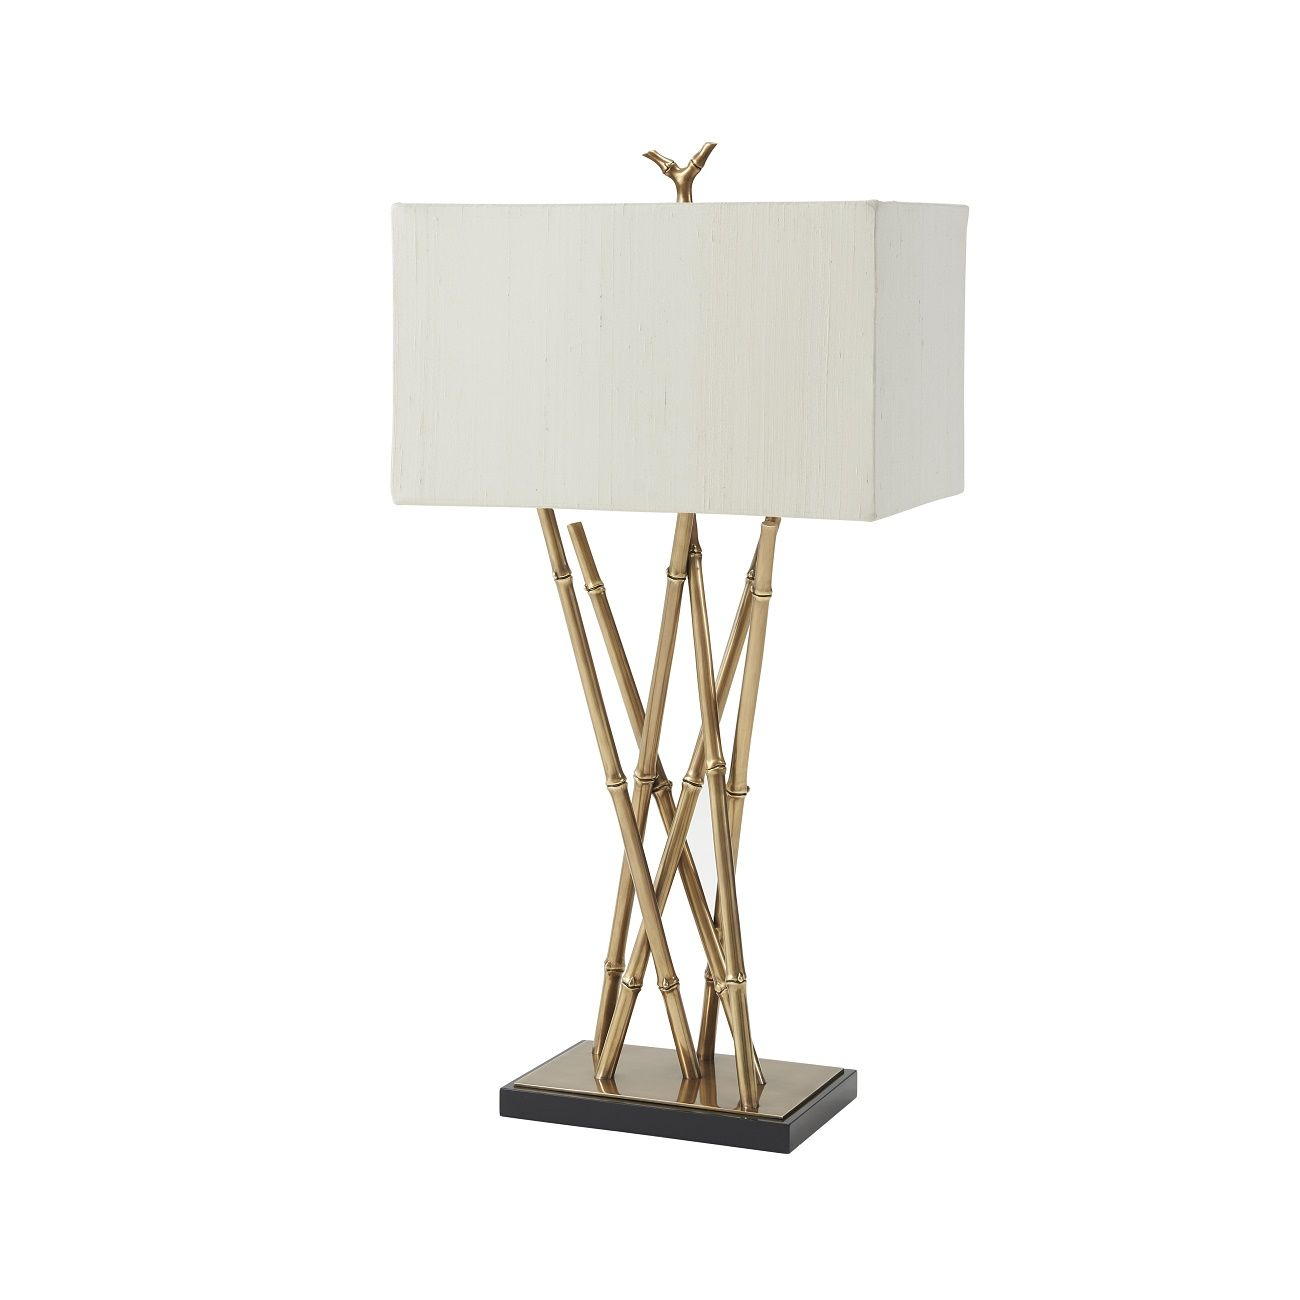 A Finely Cast Br Bamboo Table Lamp The Gathered Body On Black Lacquered And Platform Base Surmounted By Fabric Shade With